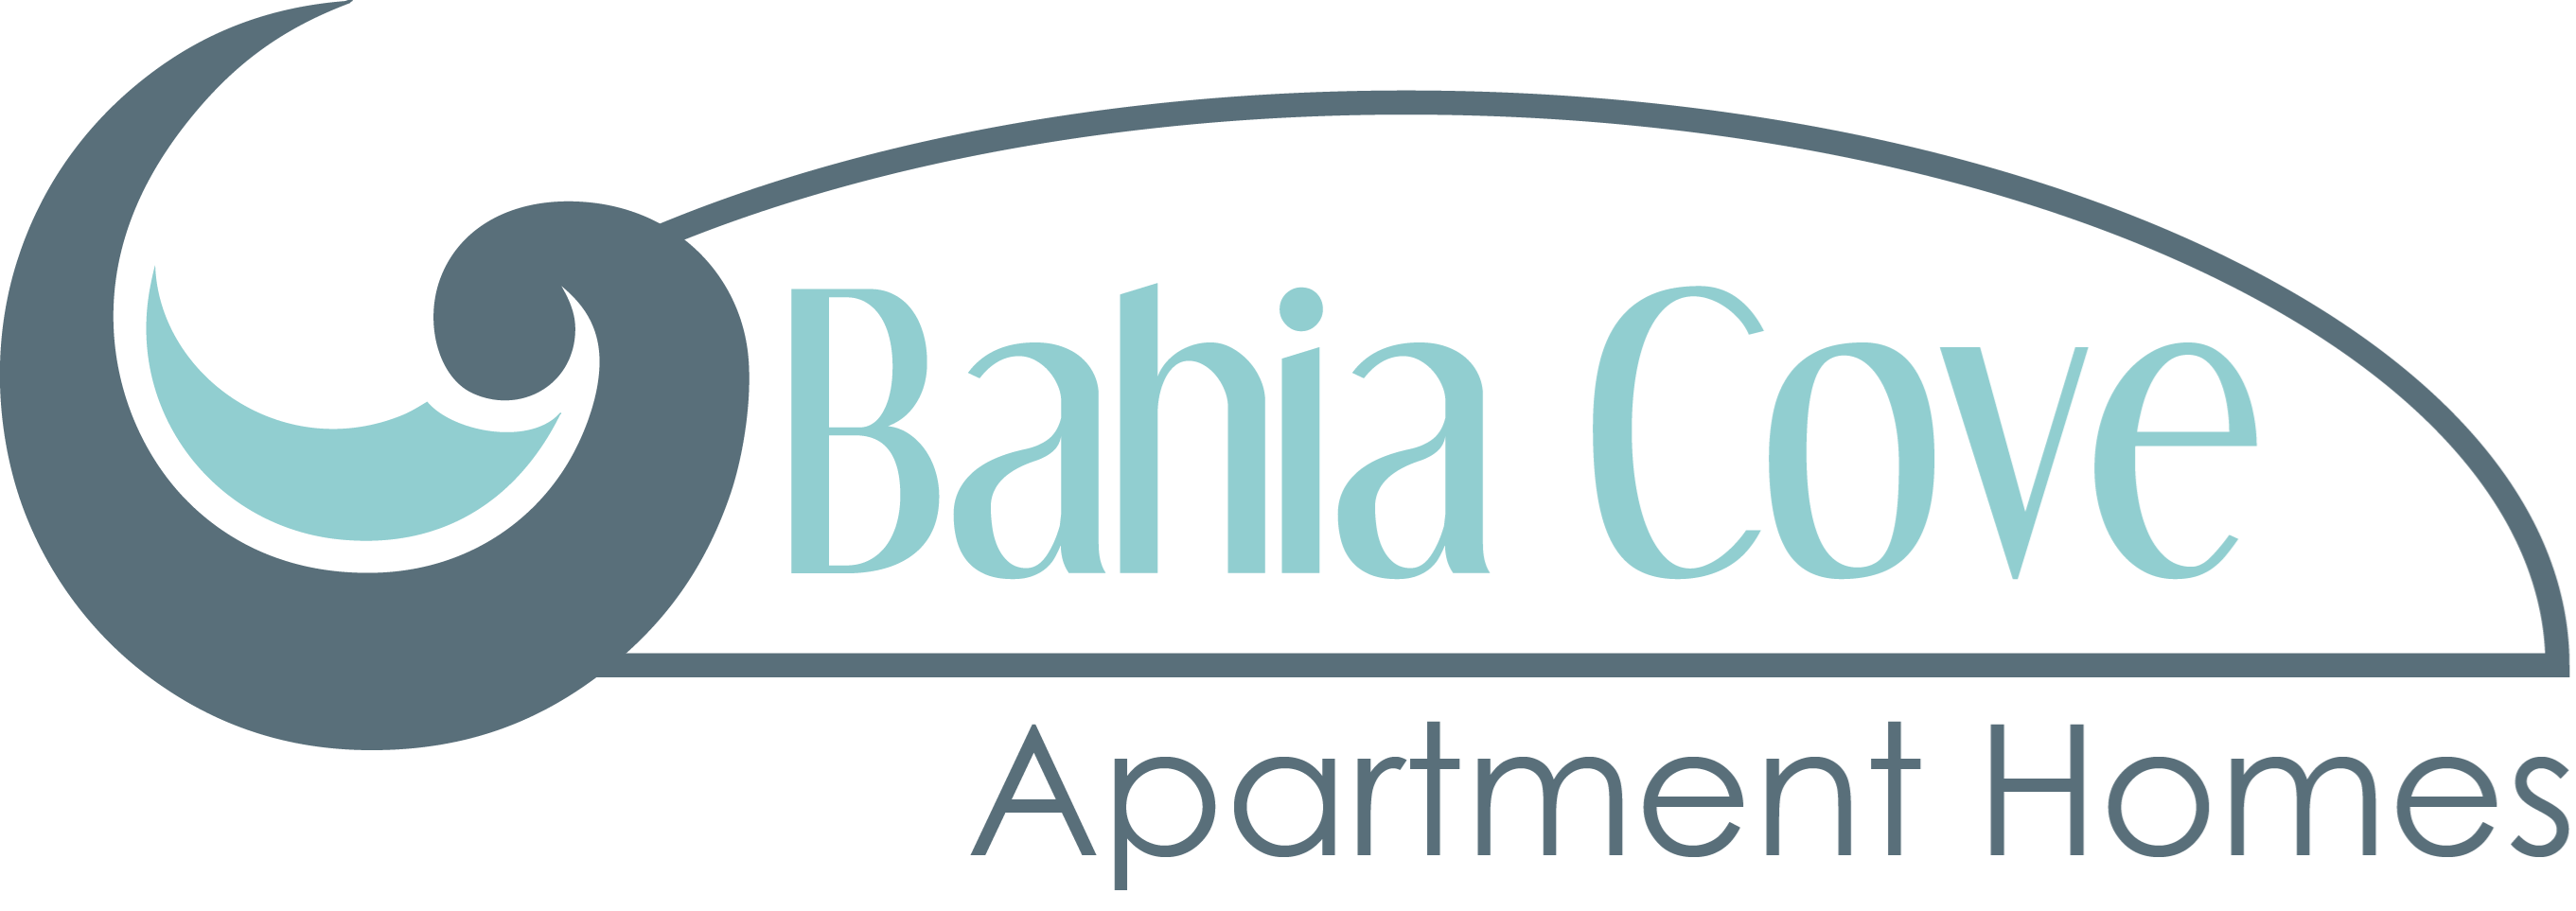 Bahia Cove Apartments